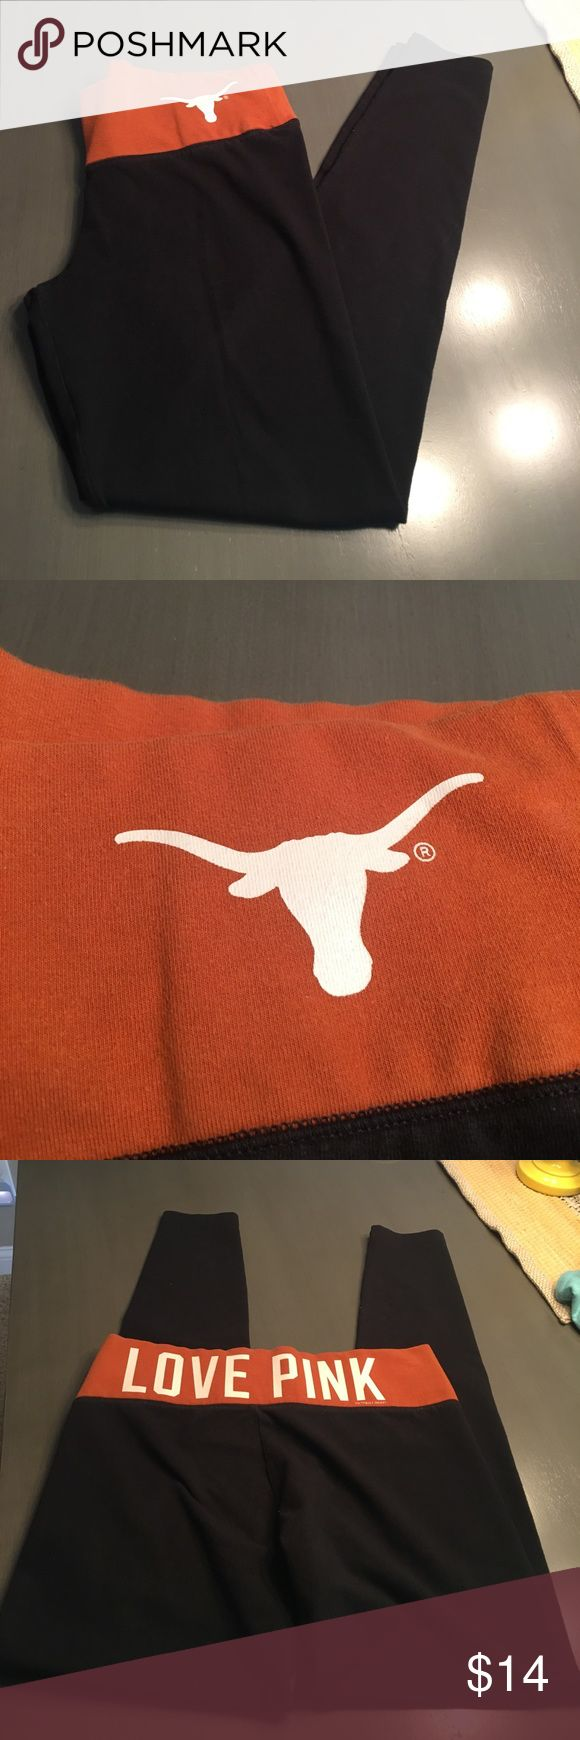 Black and orange brown Texas longhorns pink brand Black and orange Texas long horn leggings pink brand size small. Smoke free home no holes rips or stains. PINK Victoria's Secret Pants Leggings